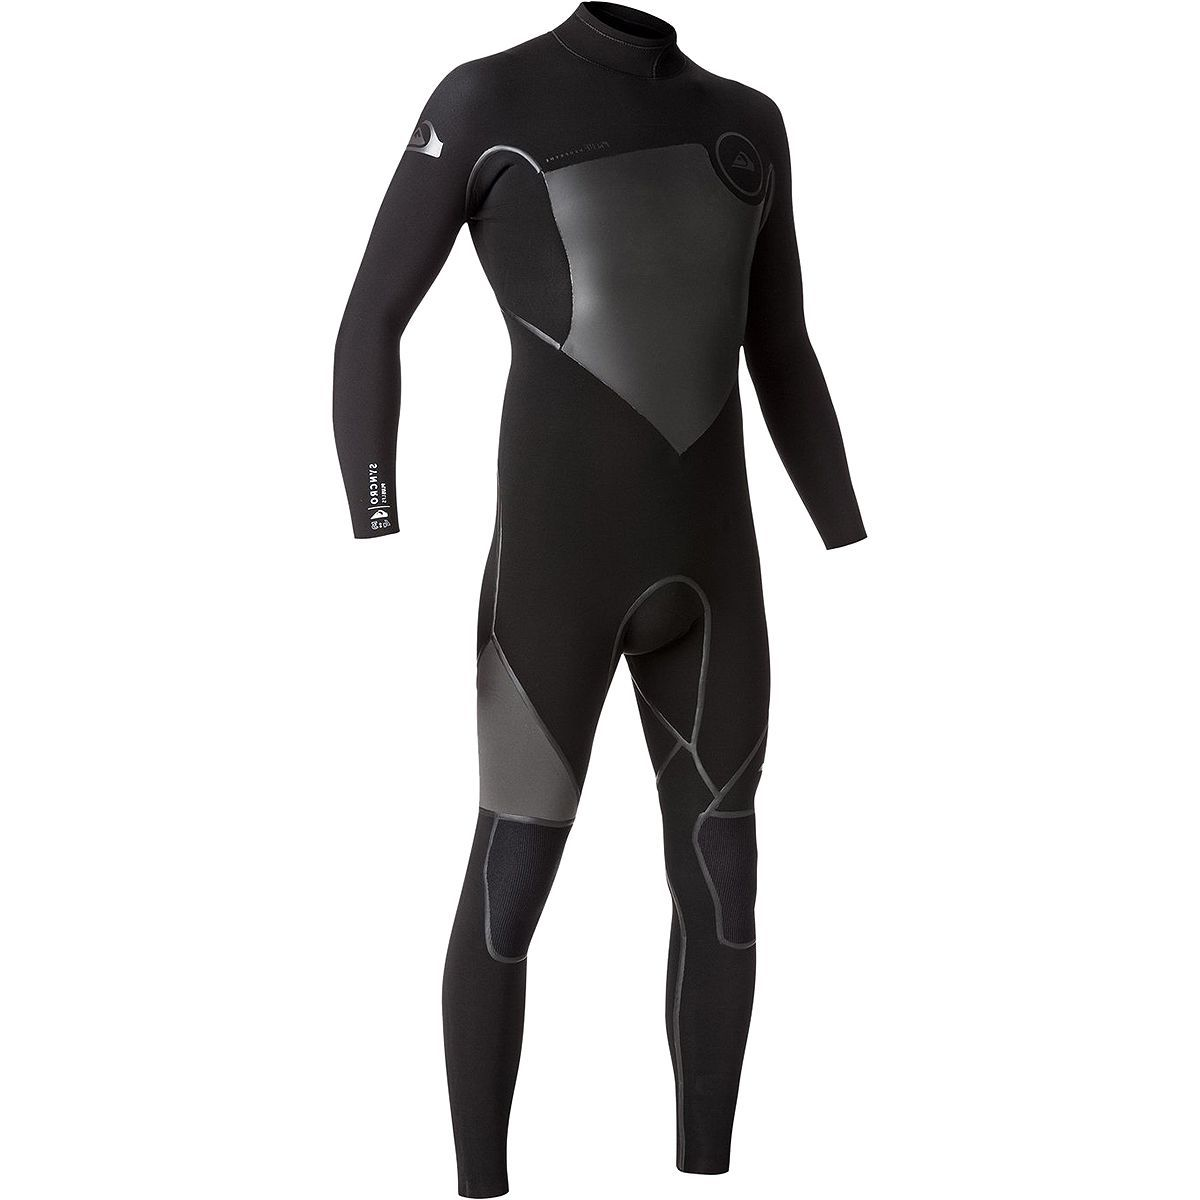 Quiksilver 4/3 Syncro Plus Back-Zip LFS Wetsuit - Men's